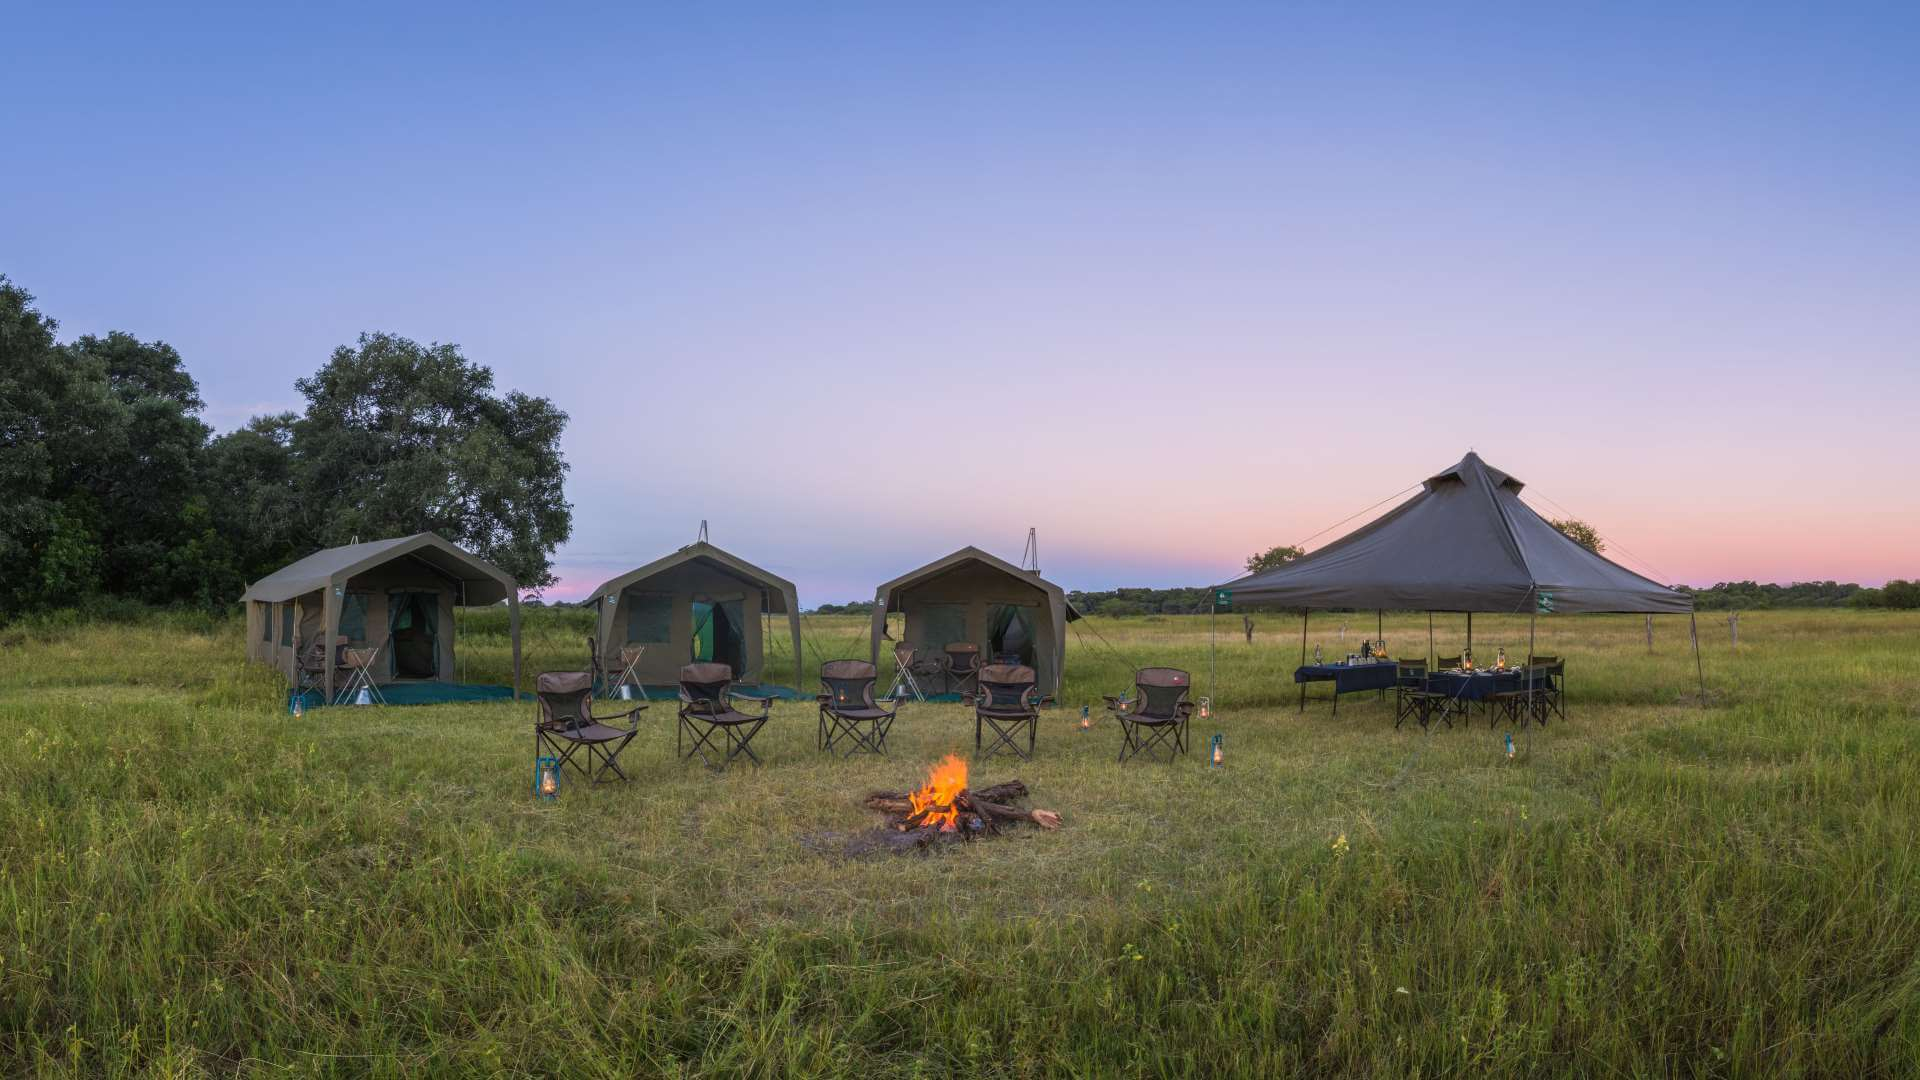 Camping Safari Botswana | Mobile Safari in Okavango Delta and Moremi NP